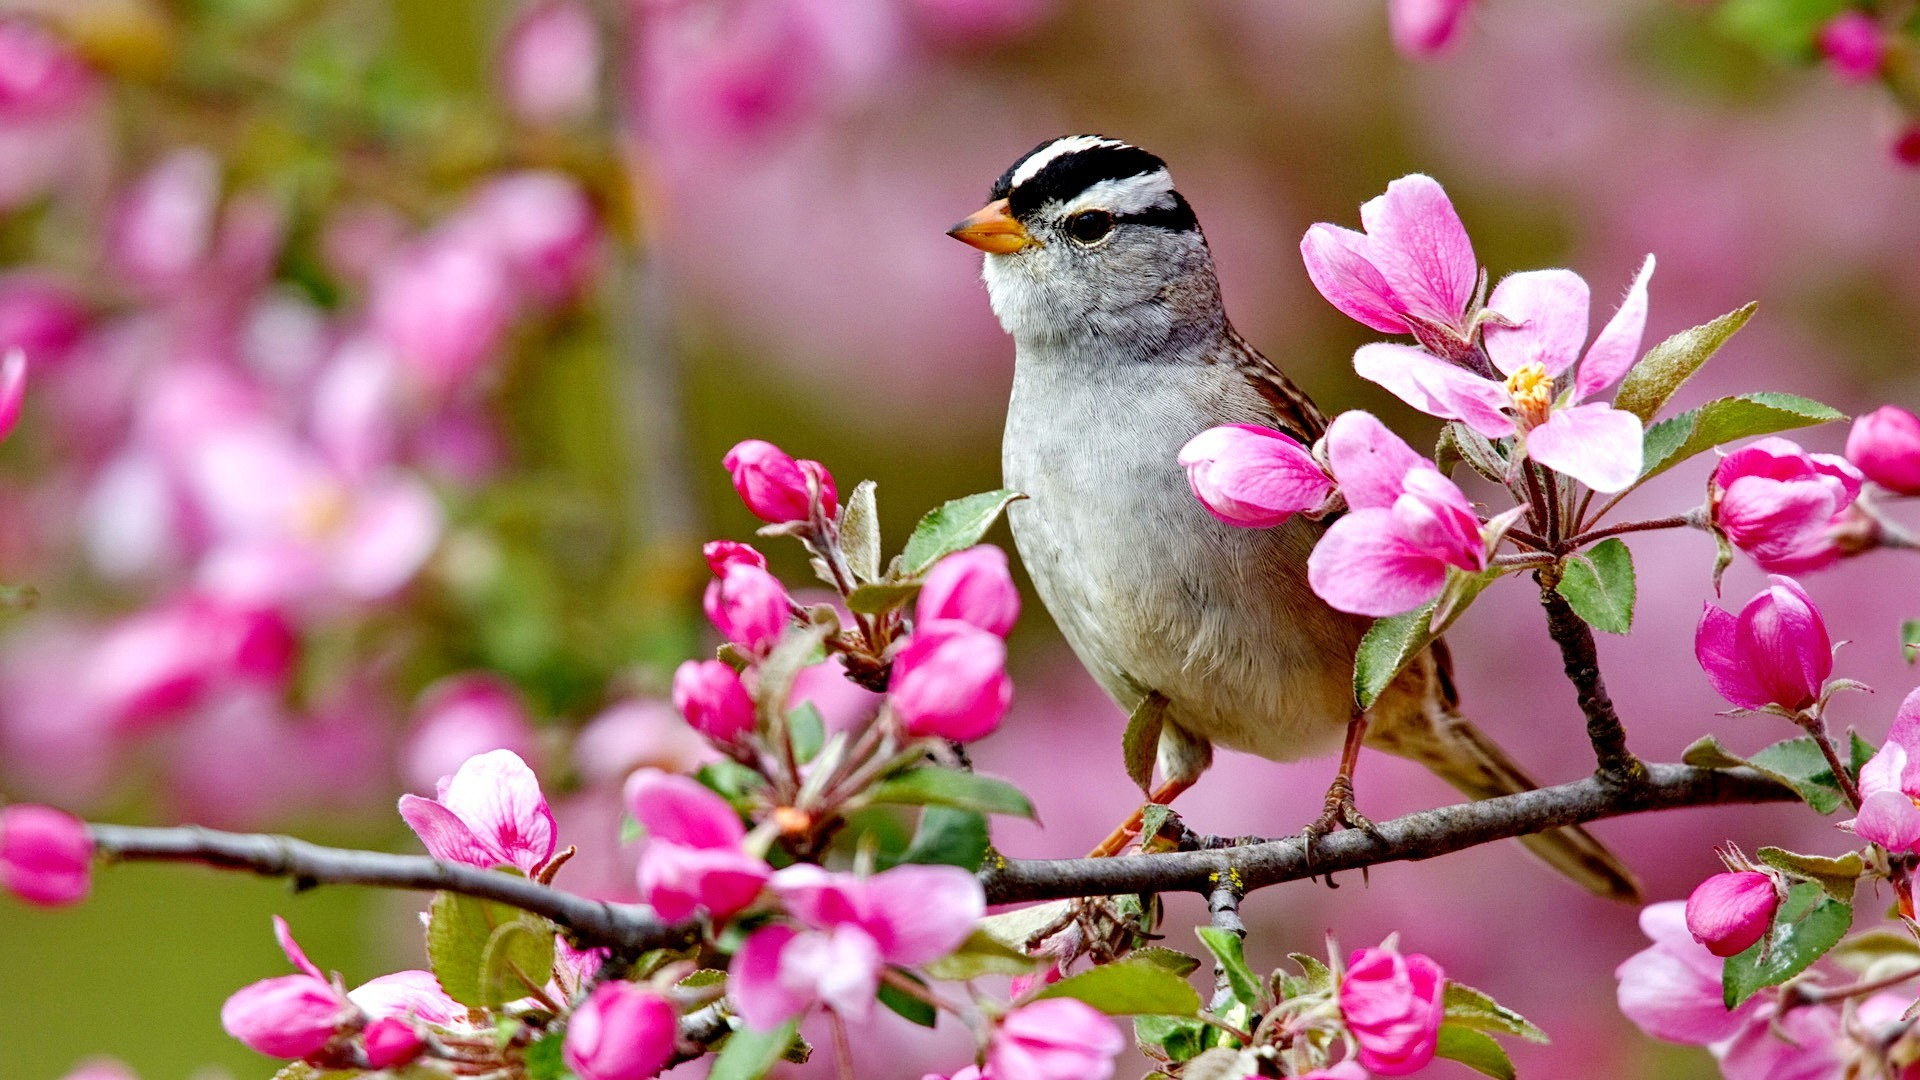 Flowers: Bird Spring Flowers Colorful Forces Nature Colors Birds Splendor  Pink Tree Buds Landscpae Lovely